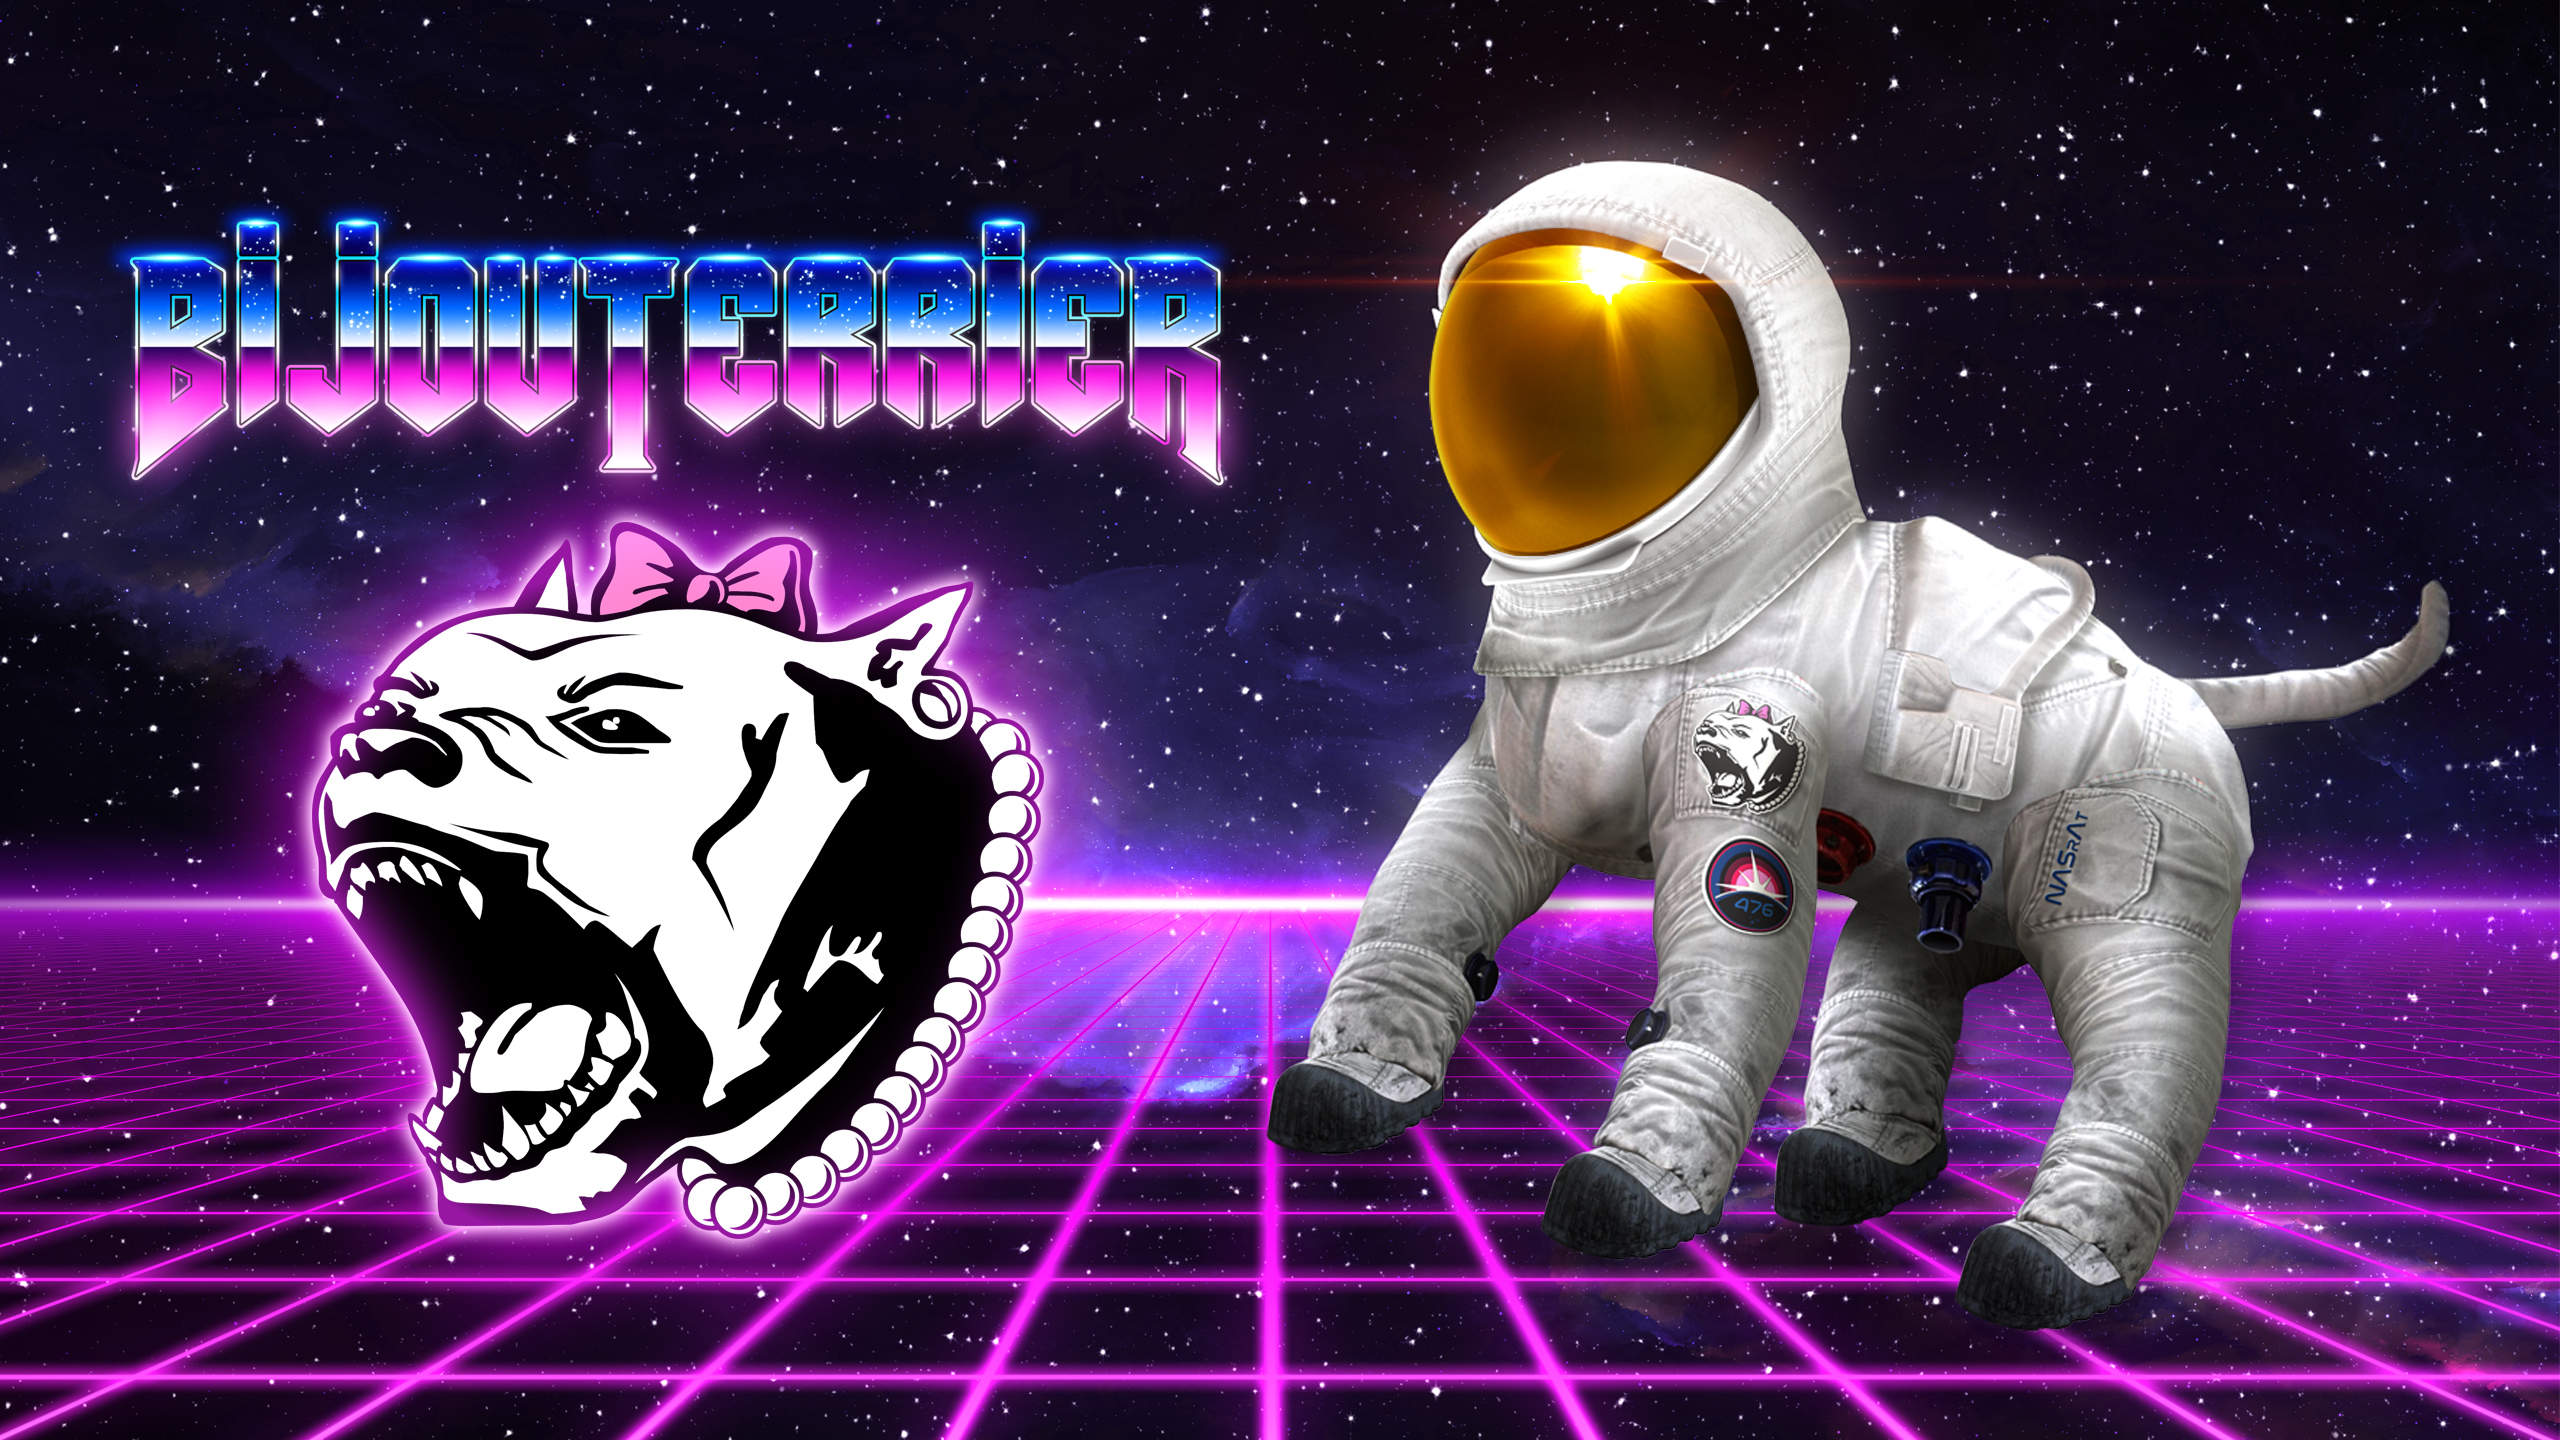 spaceshit captain bijouterrier